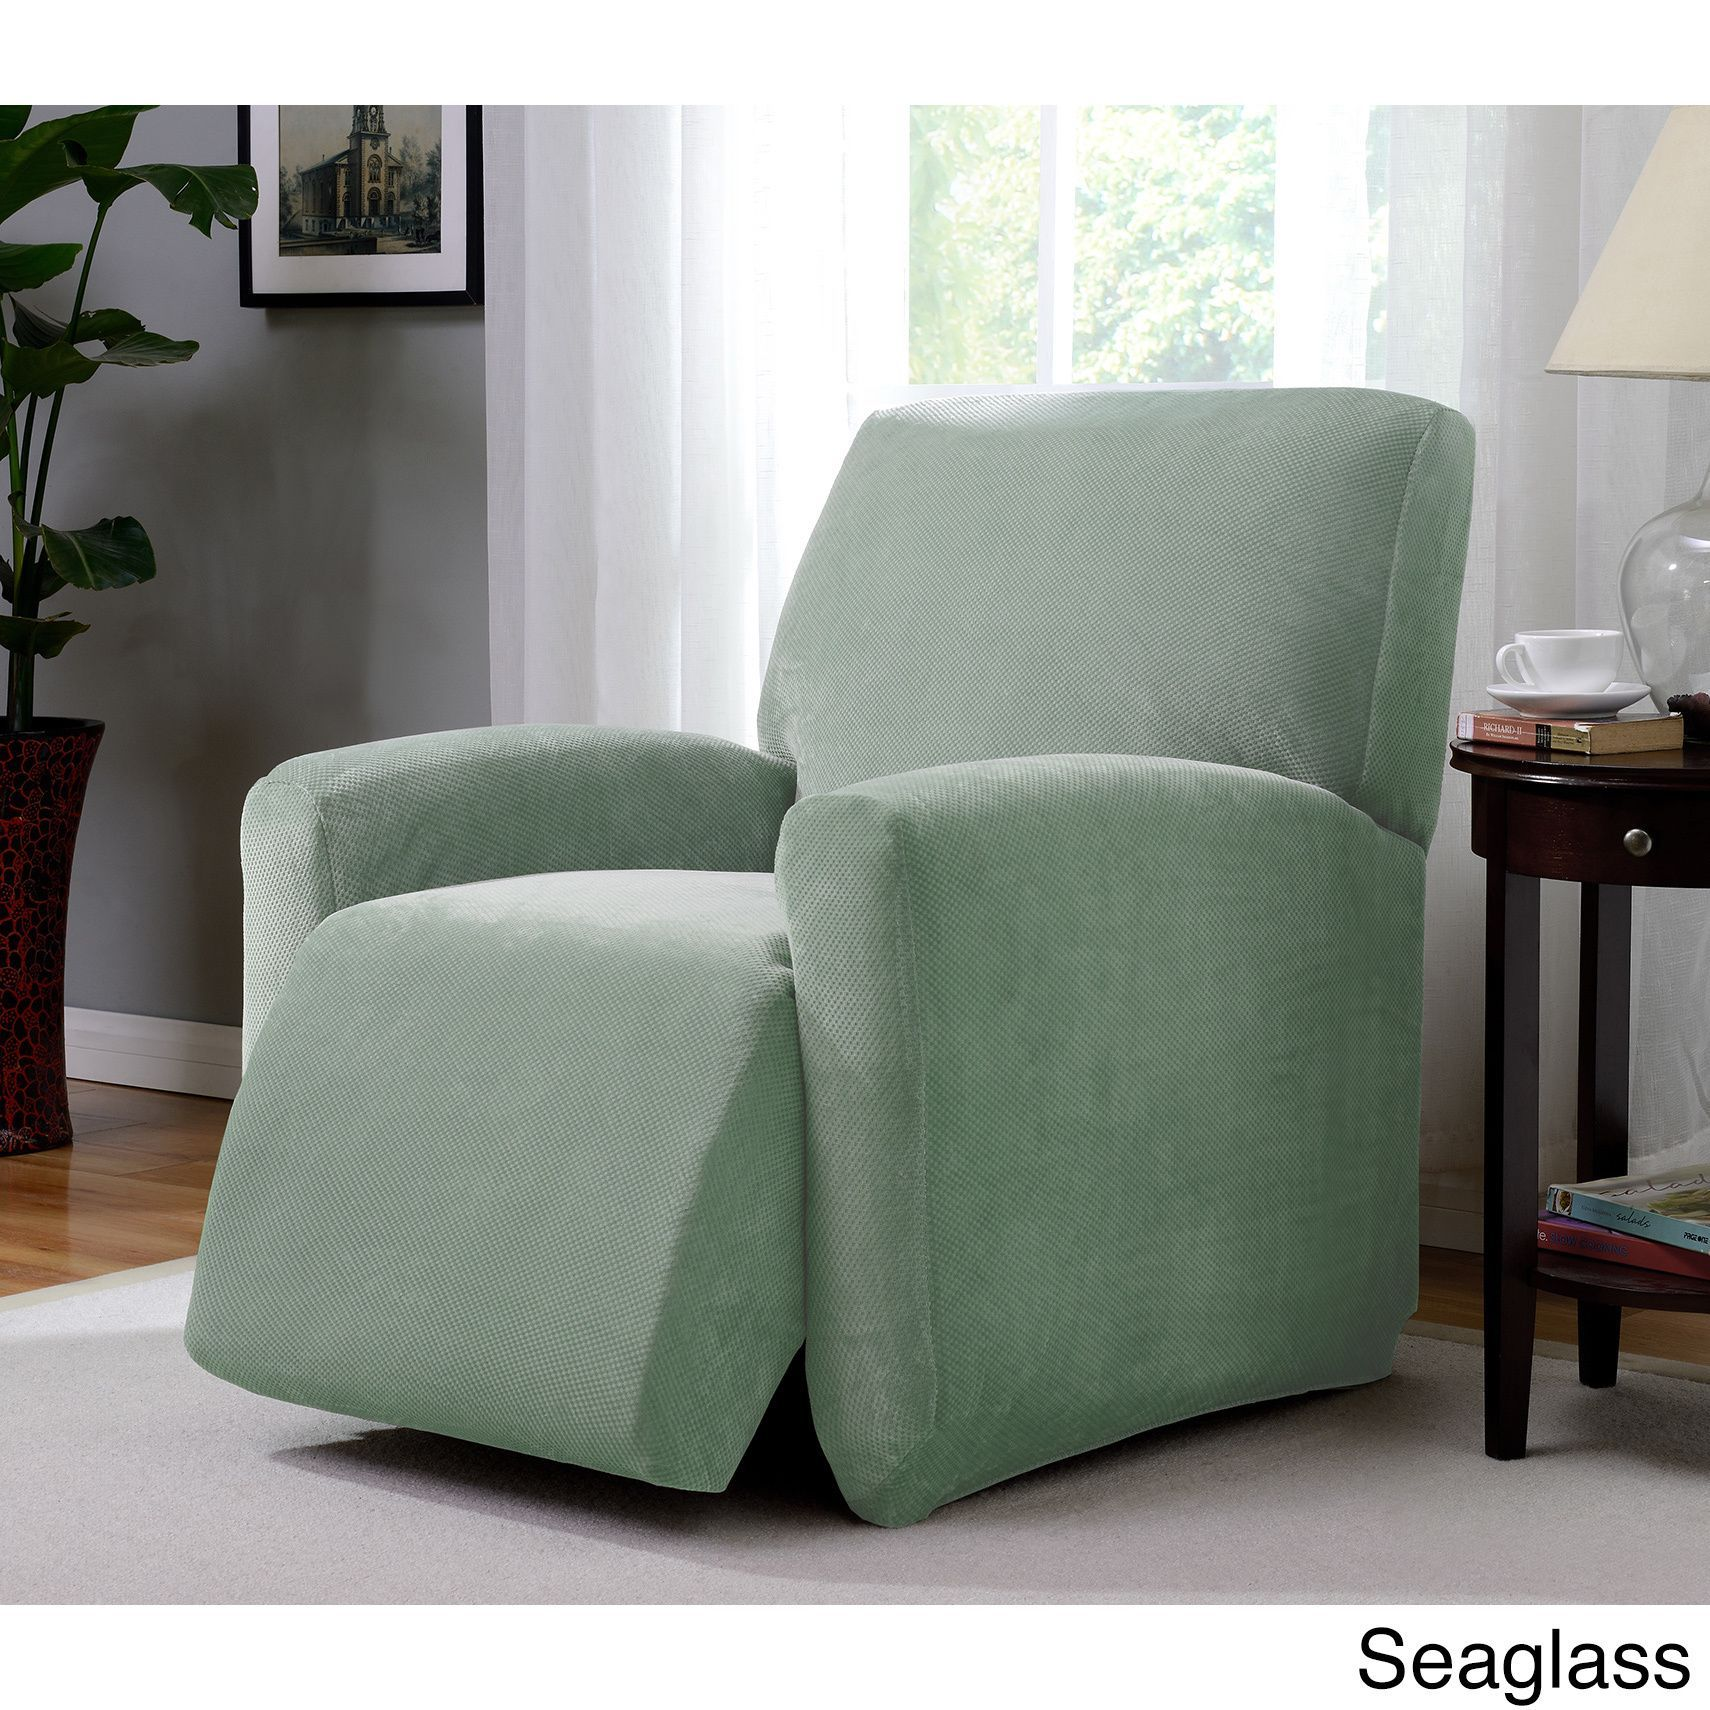 of t size large chair recliner full extra slipcovered slipcover covers slipcovers breathtaking couches ikea parsons furniture cushion